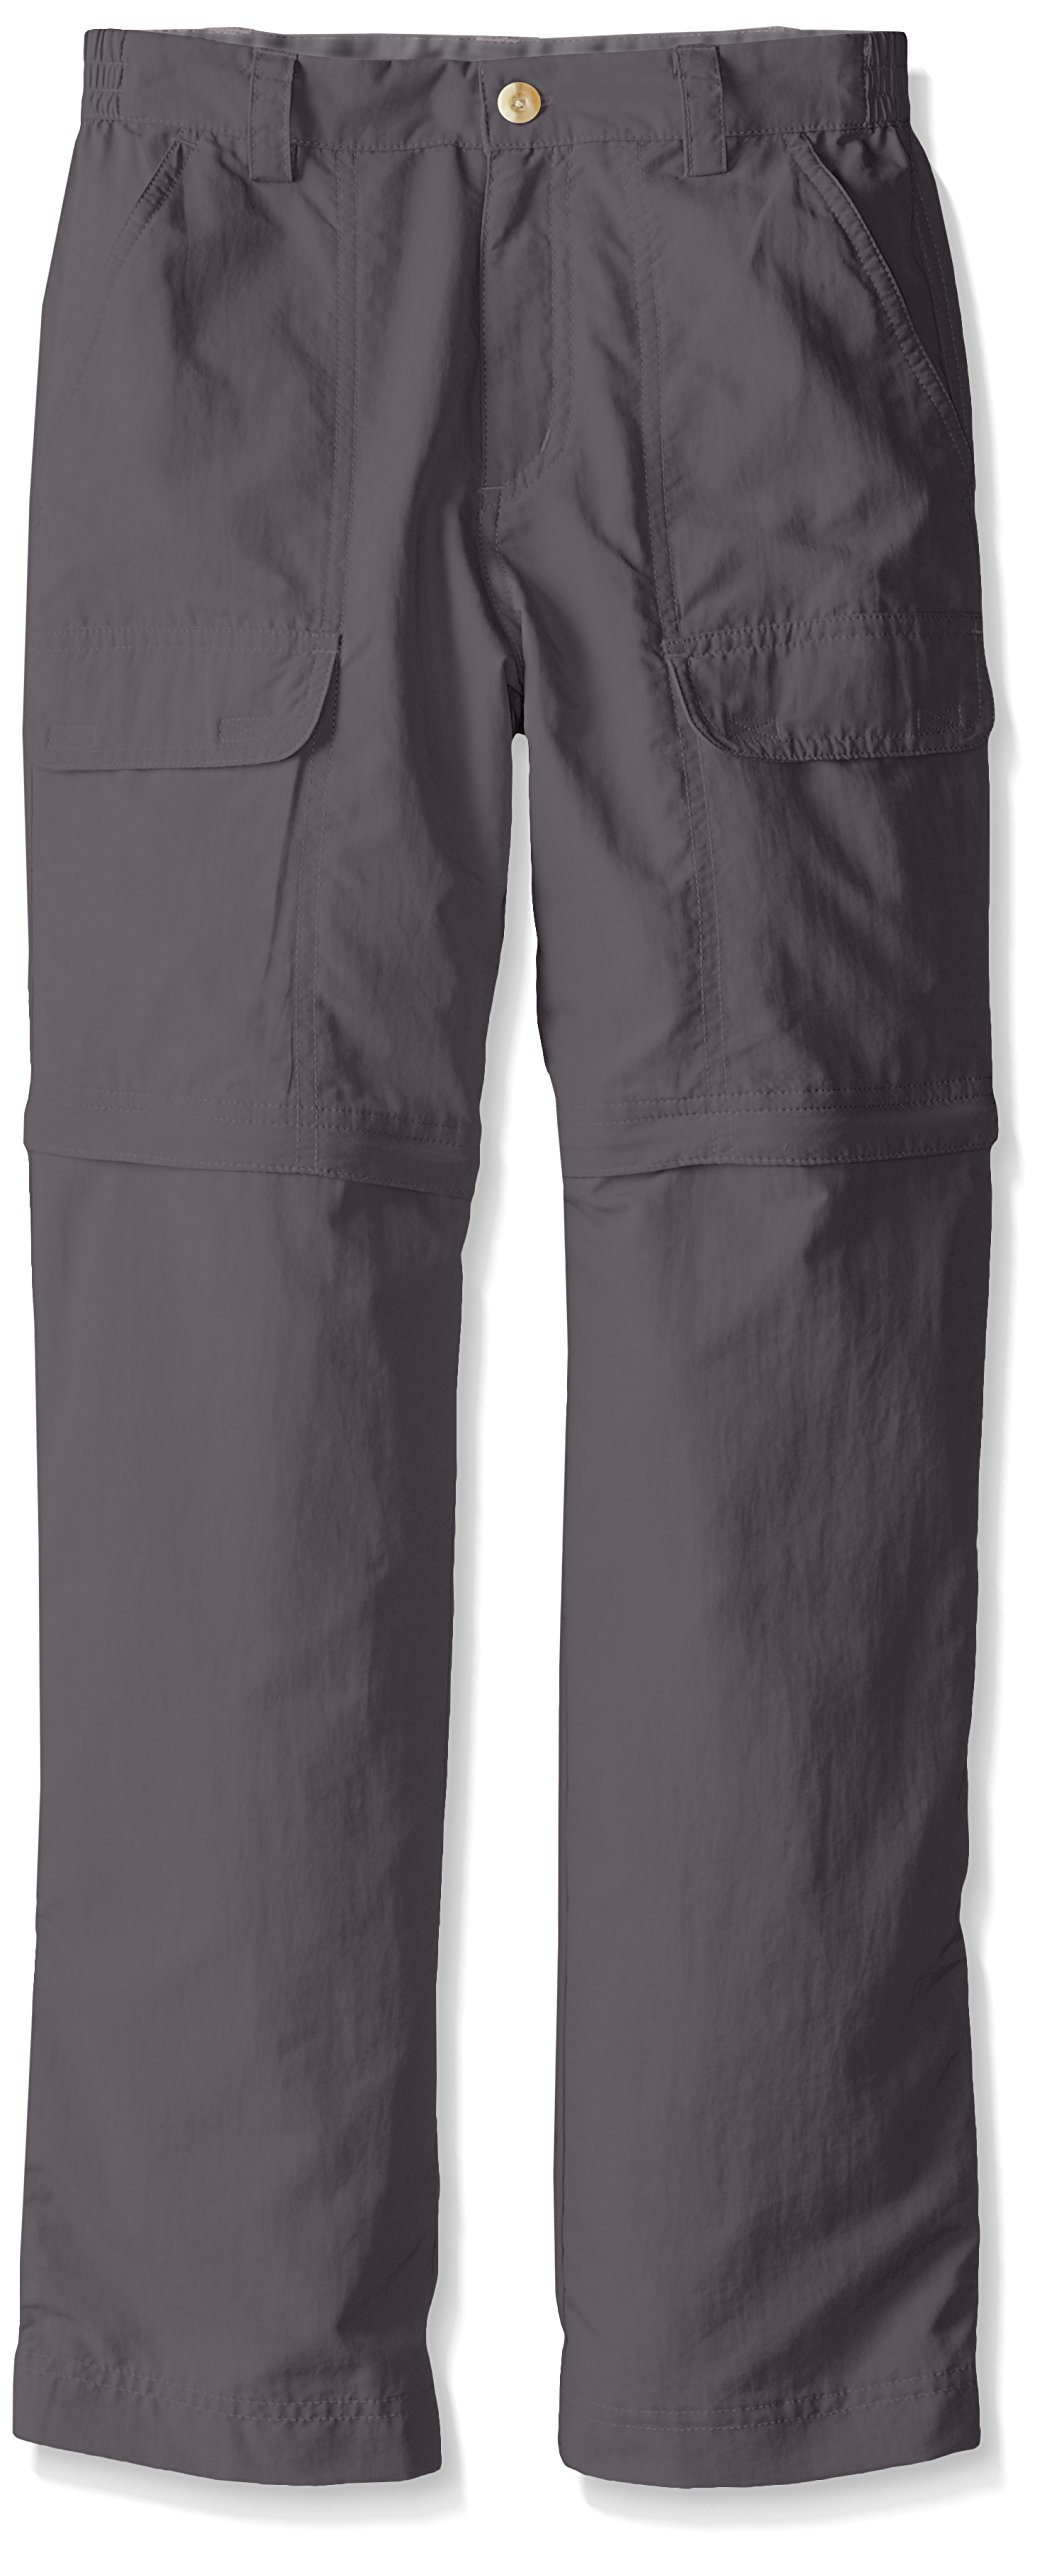 White Sierra Youth Trail Convertible Pants, Castle Rock, Medium